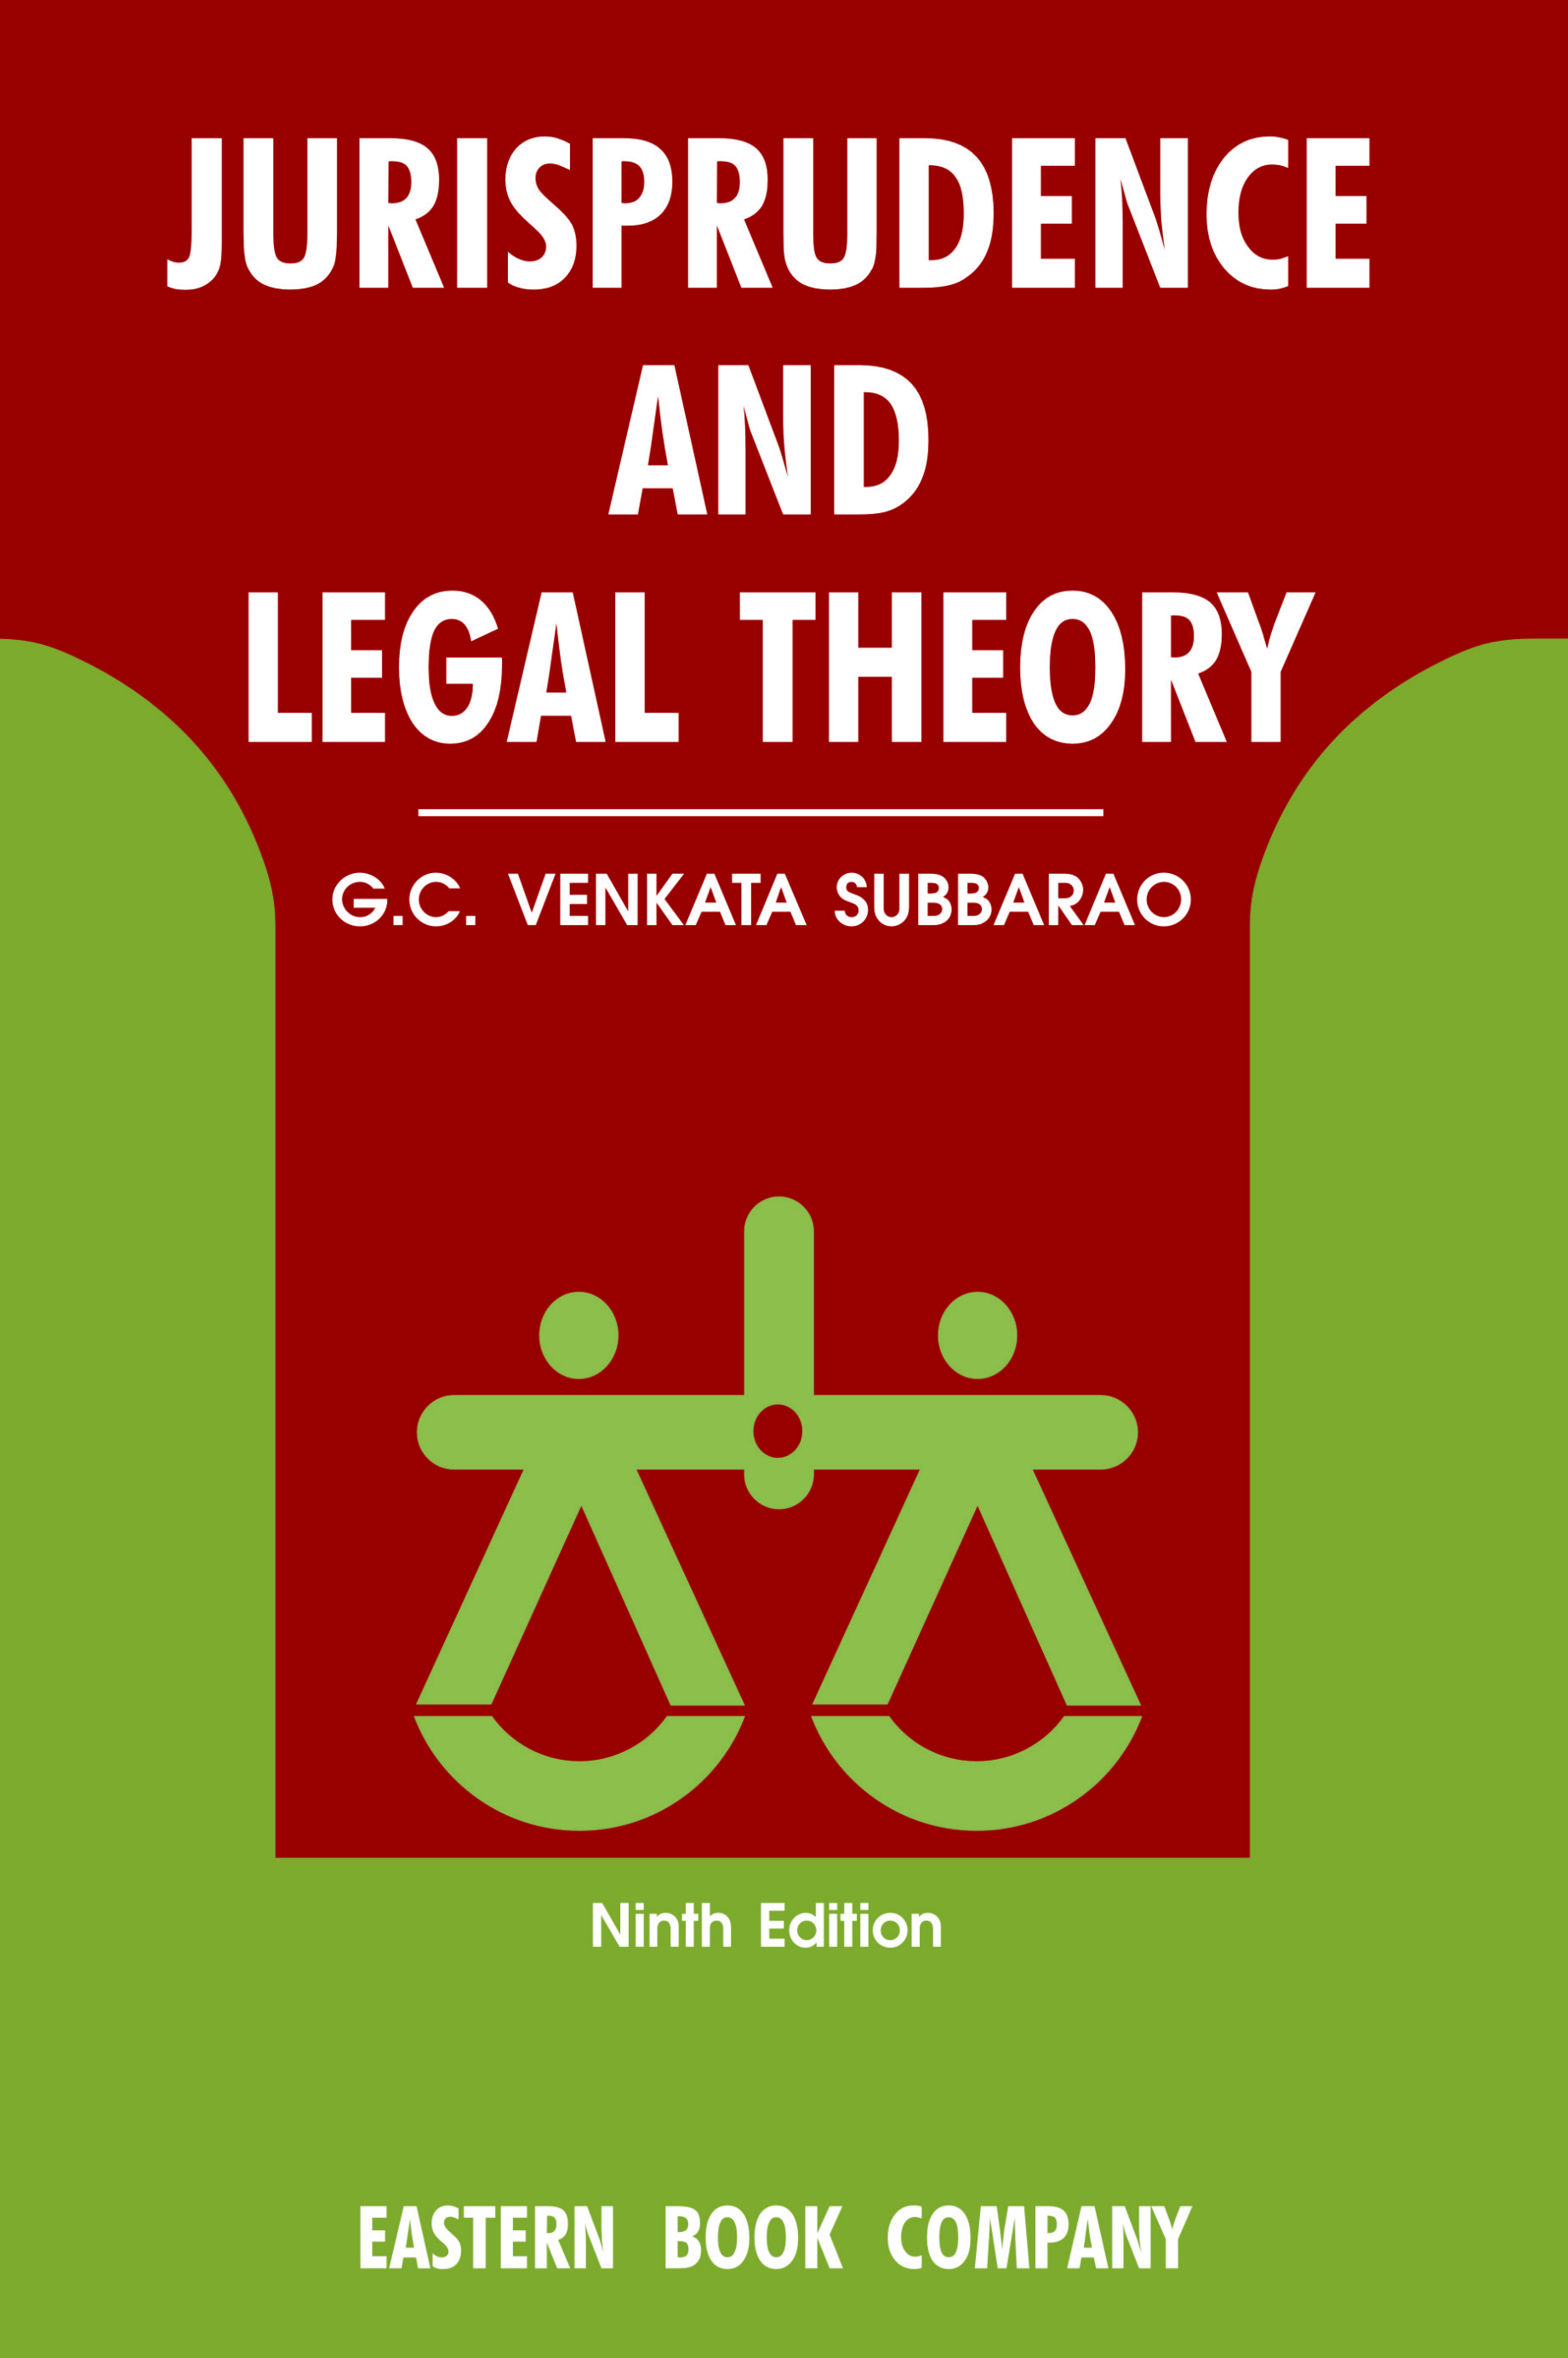 Jurisprudence and Legal Theory by G.C. Venkata Subbarao